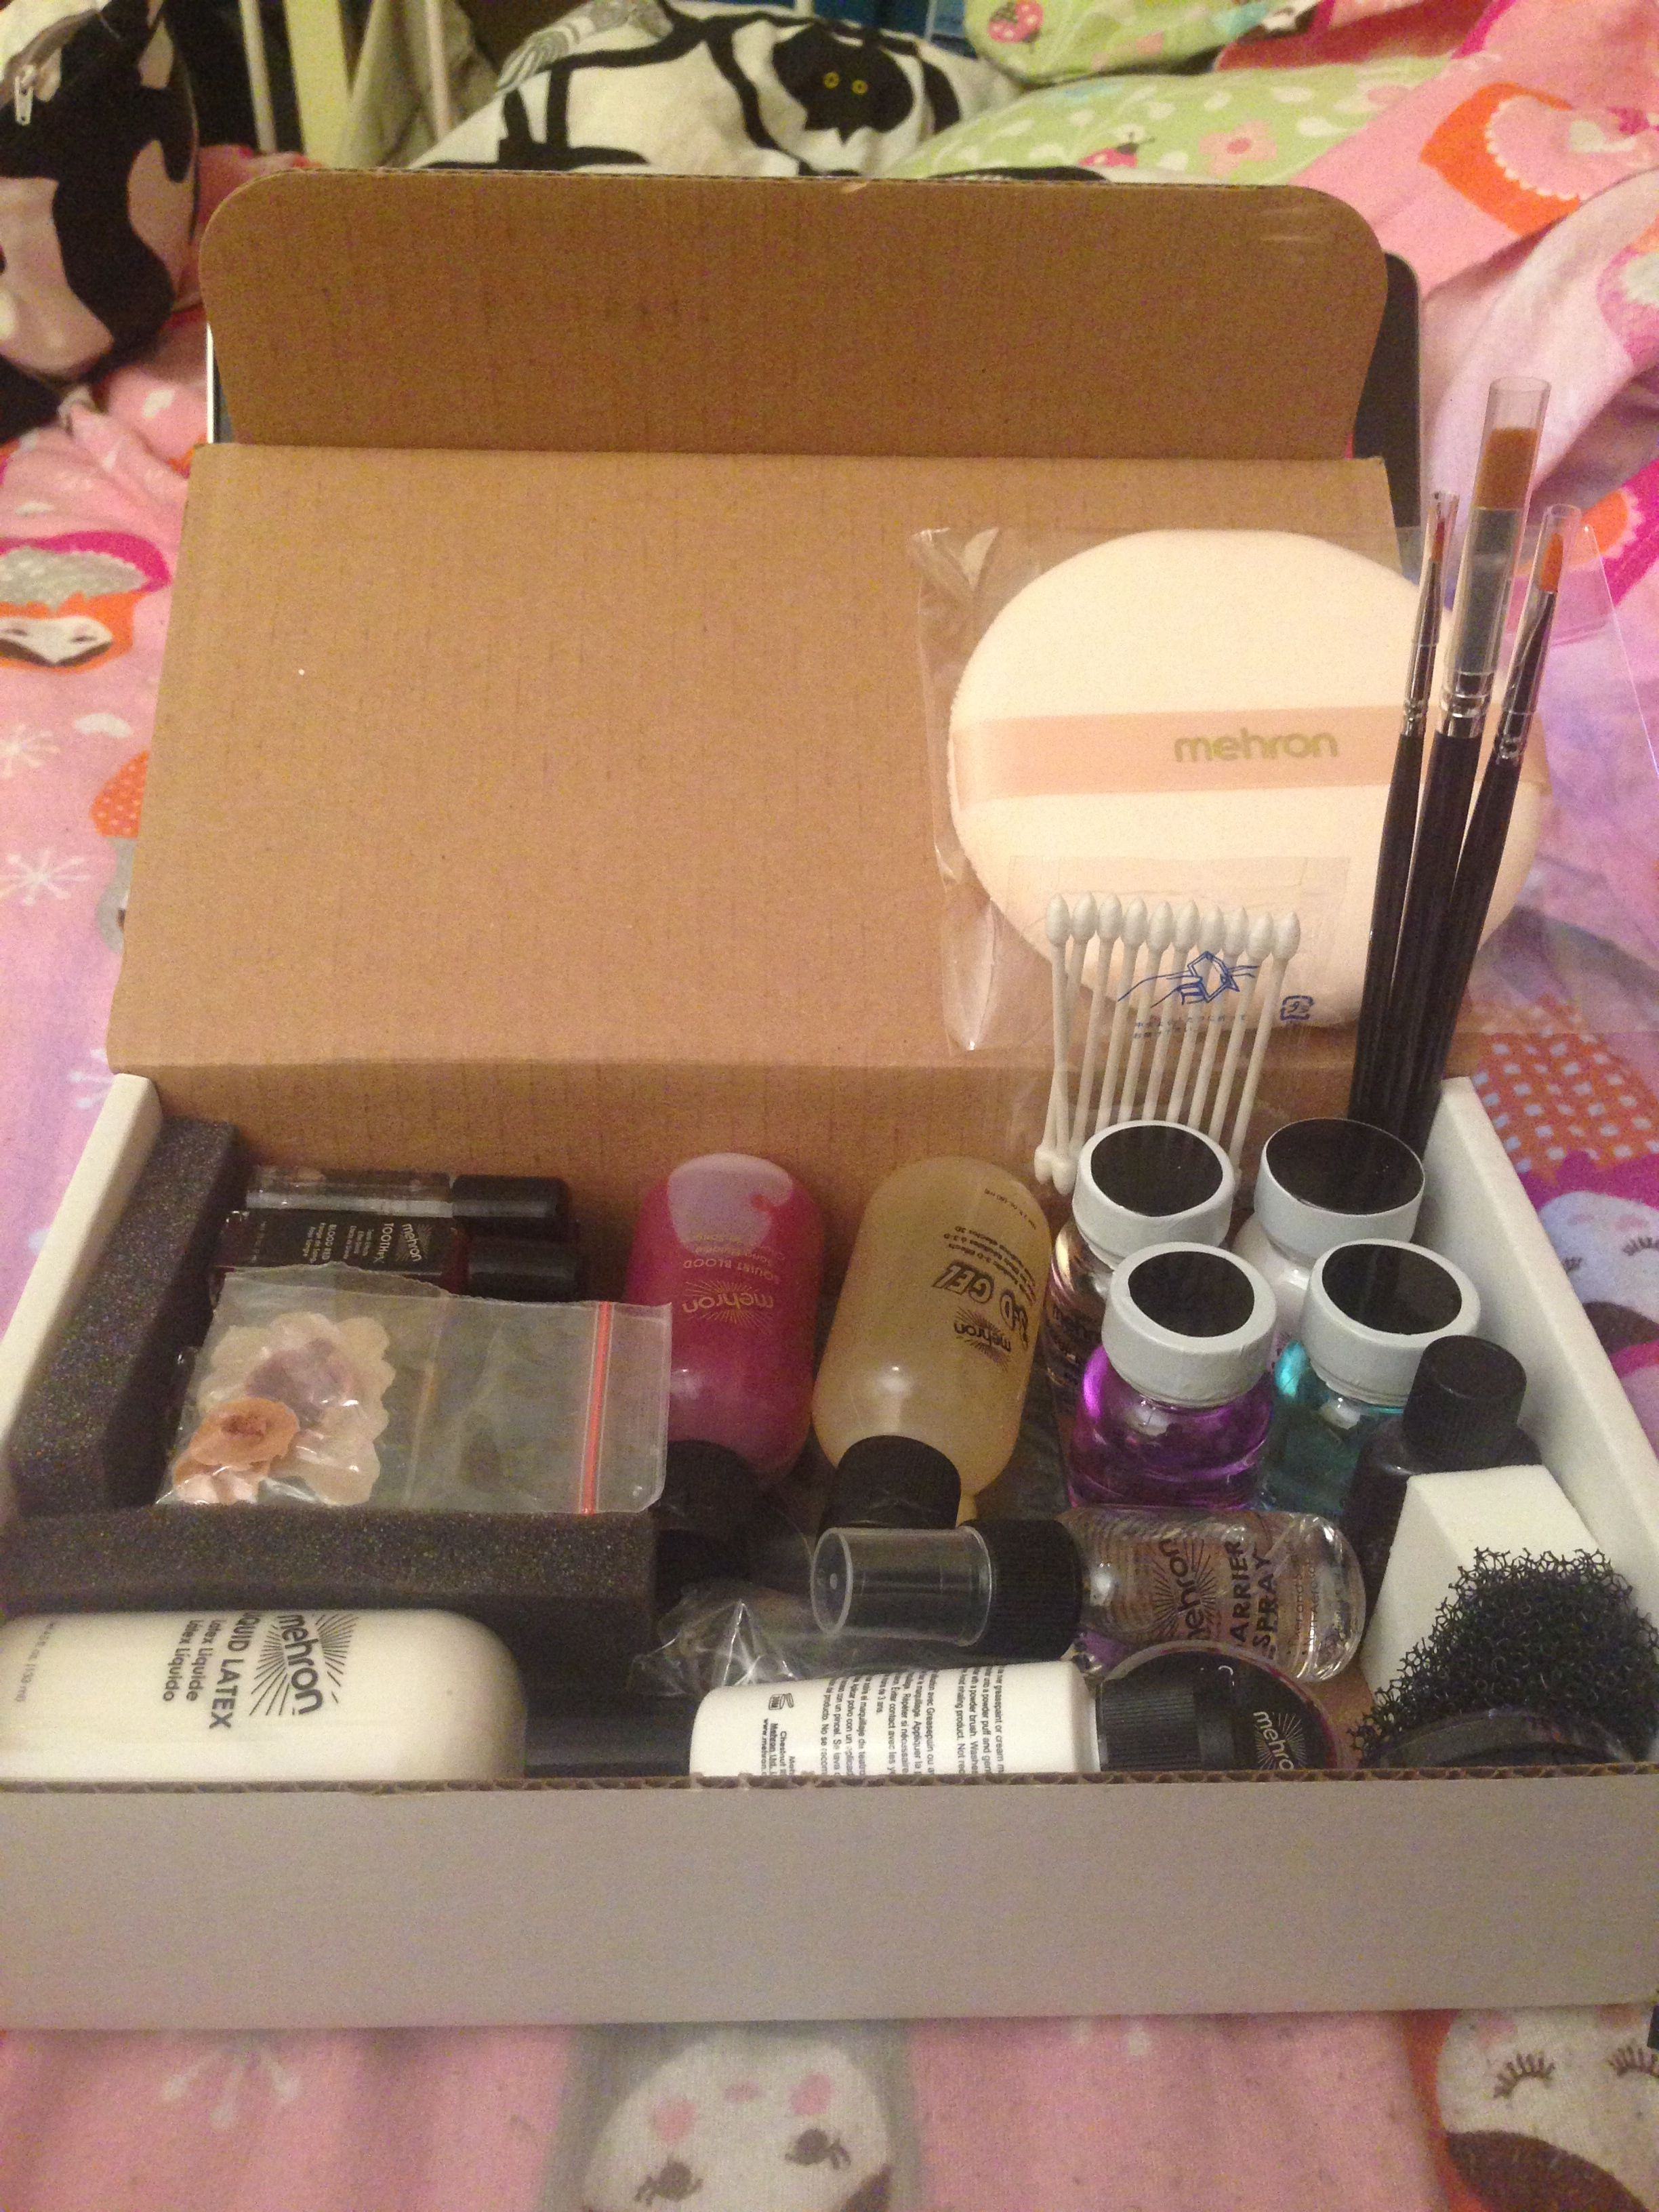 Amazing new Mehron Special Effects Makeup Kit! Tools of